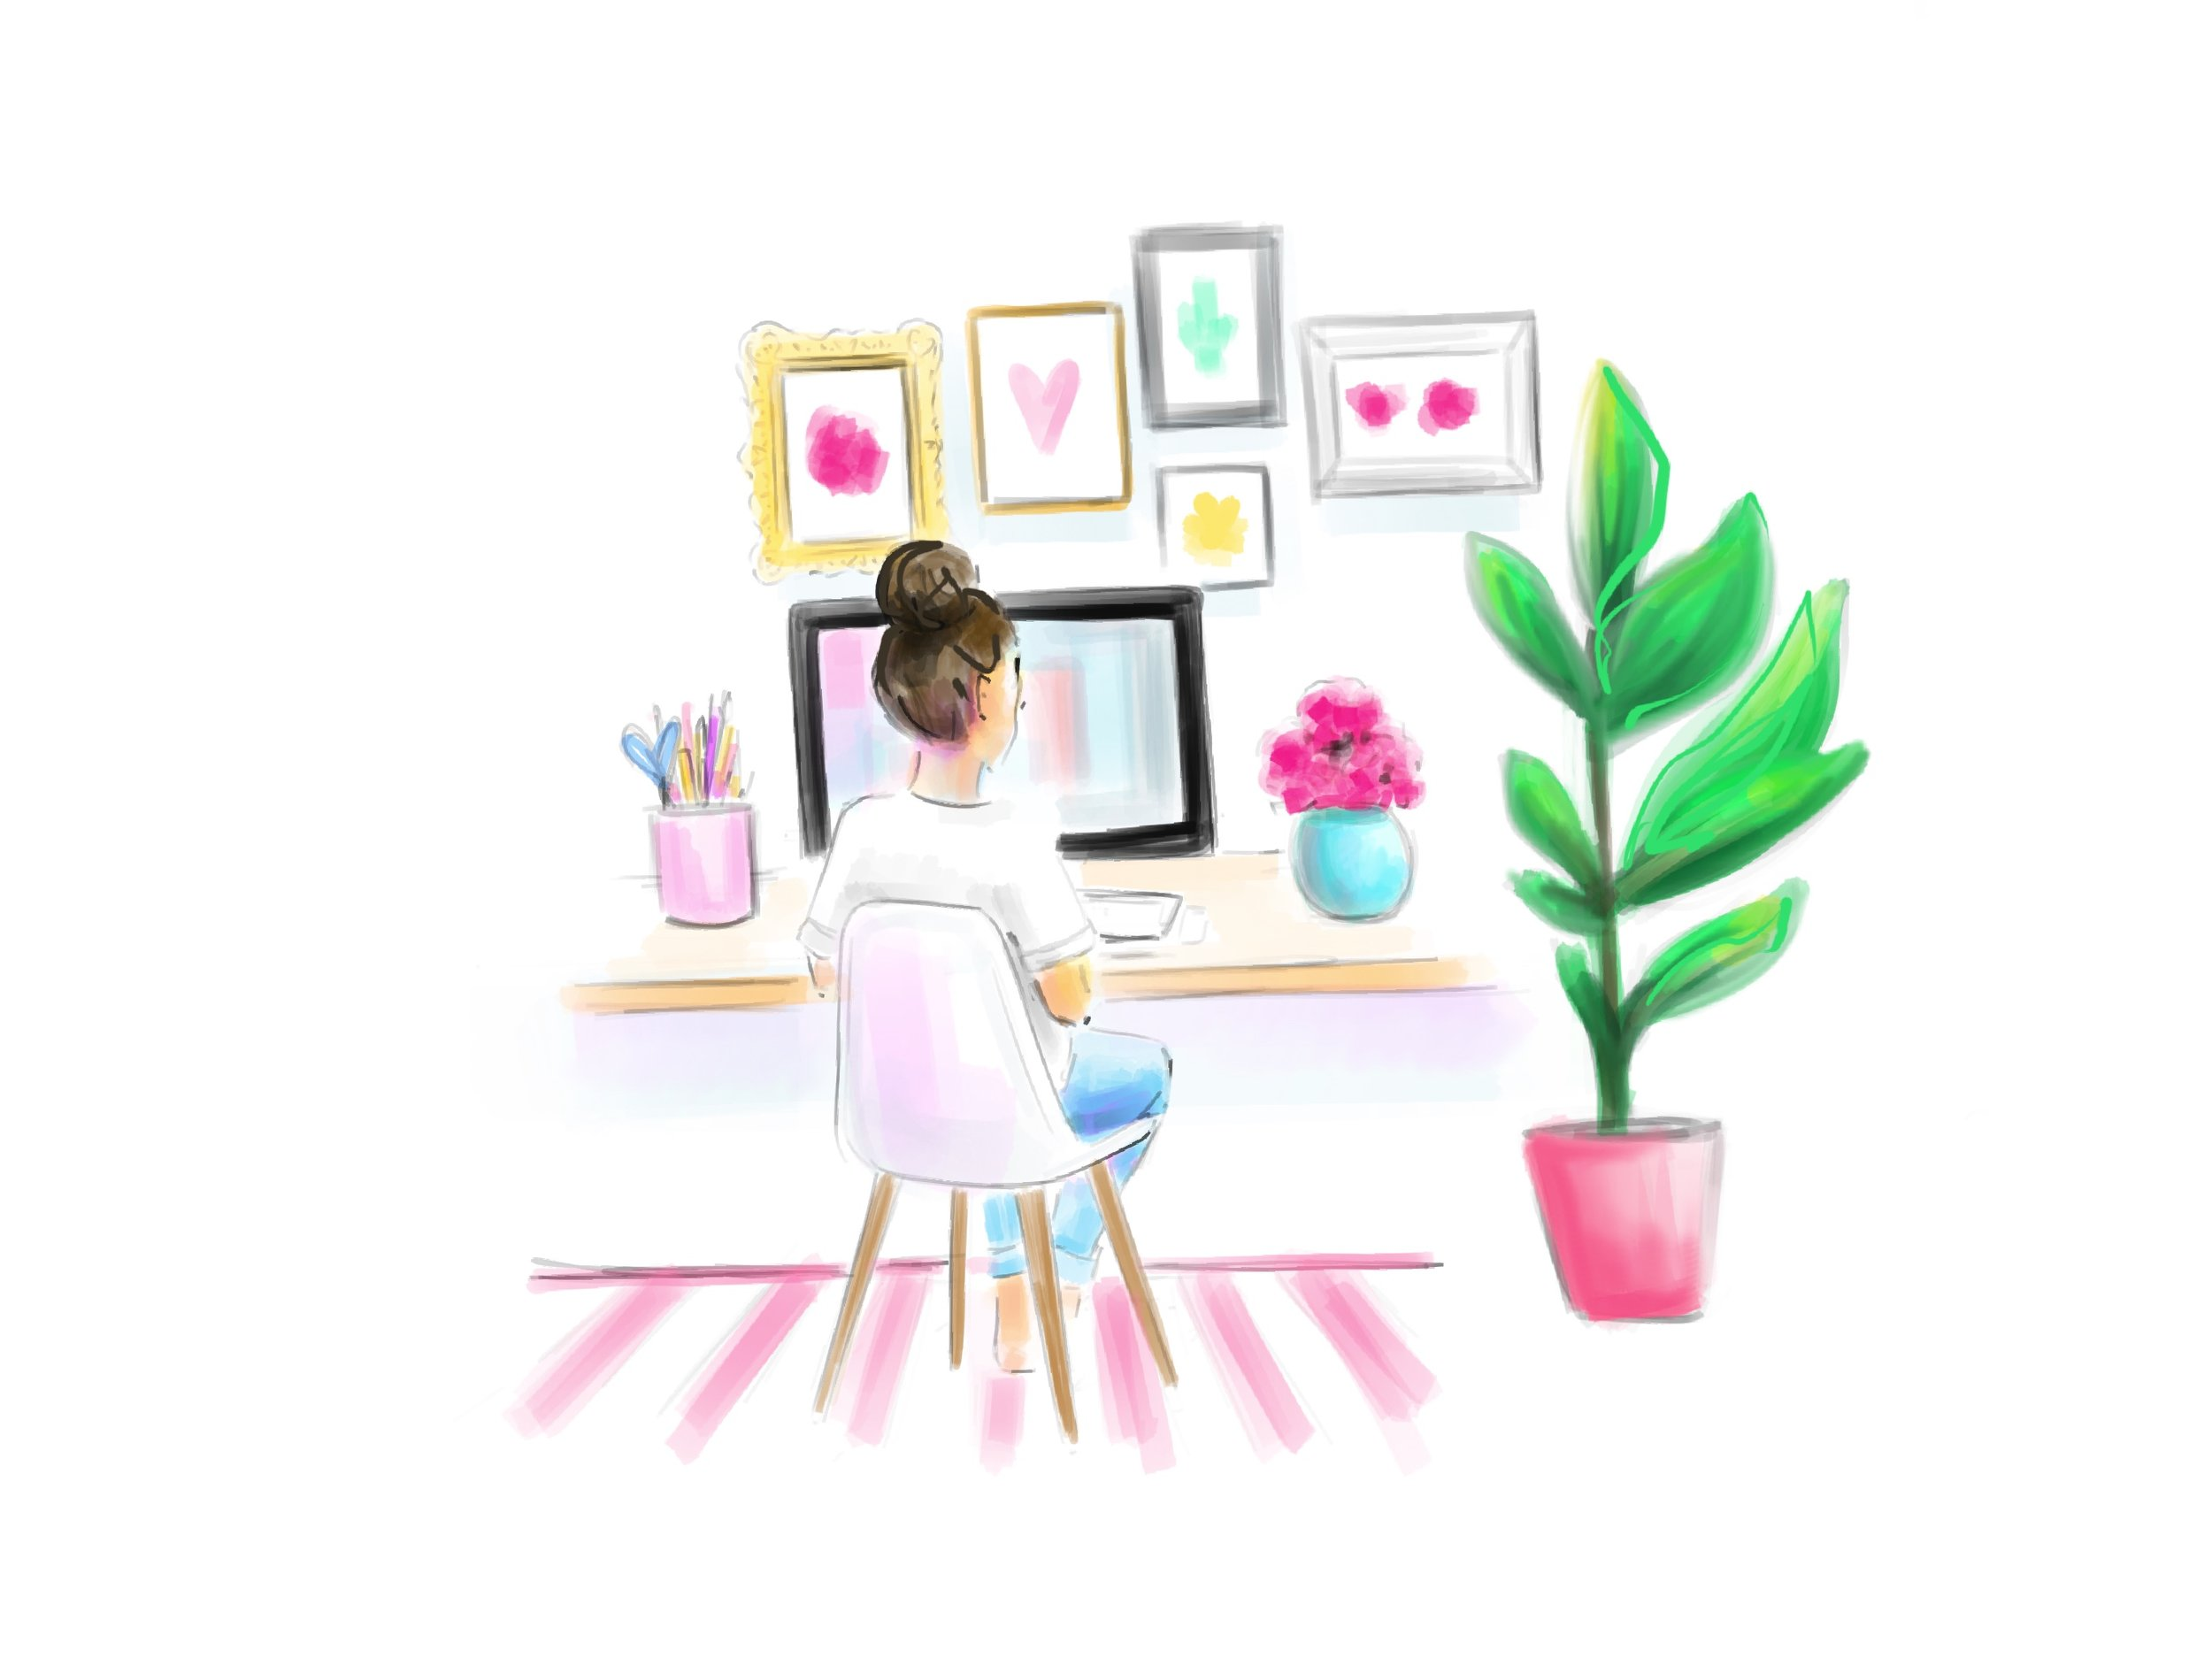 girl-working-at-desk-watercolor-illustration-by-stephanie-anne.jpg